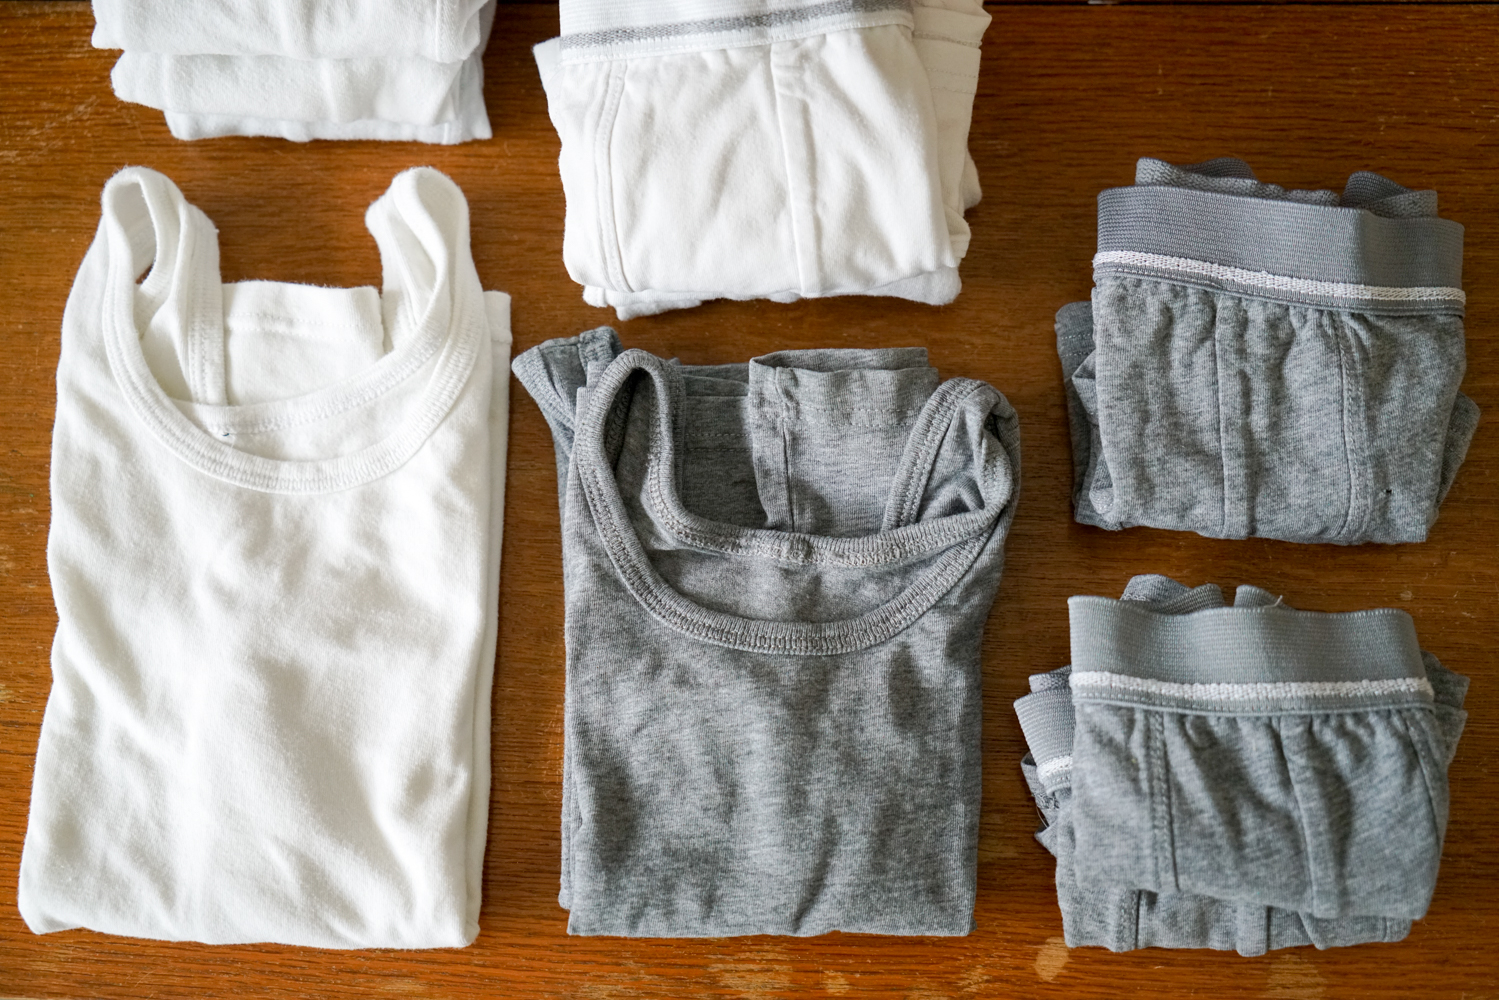 a tip for faster laundry sorting